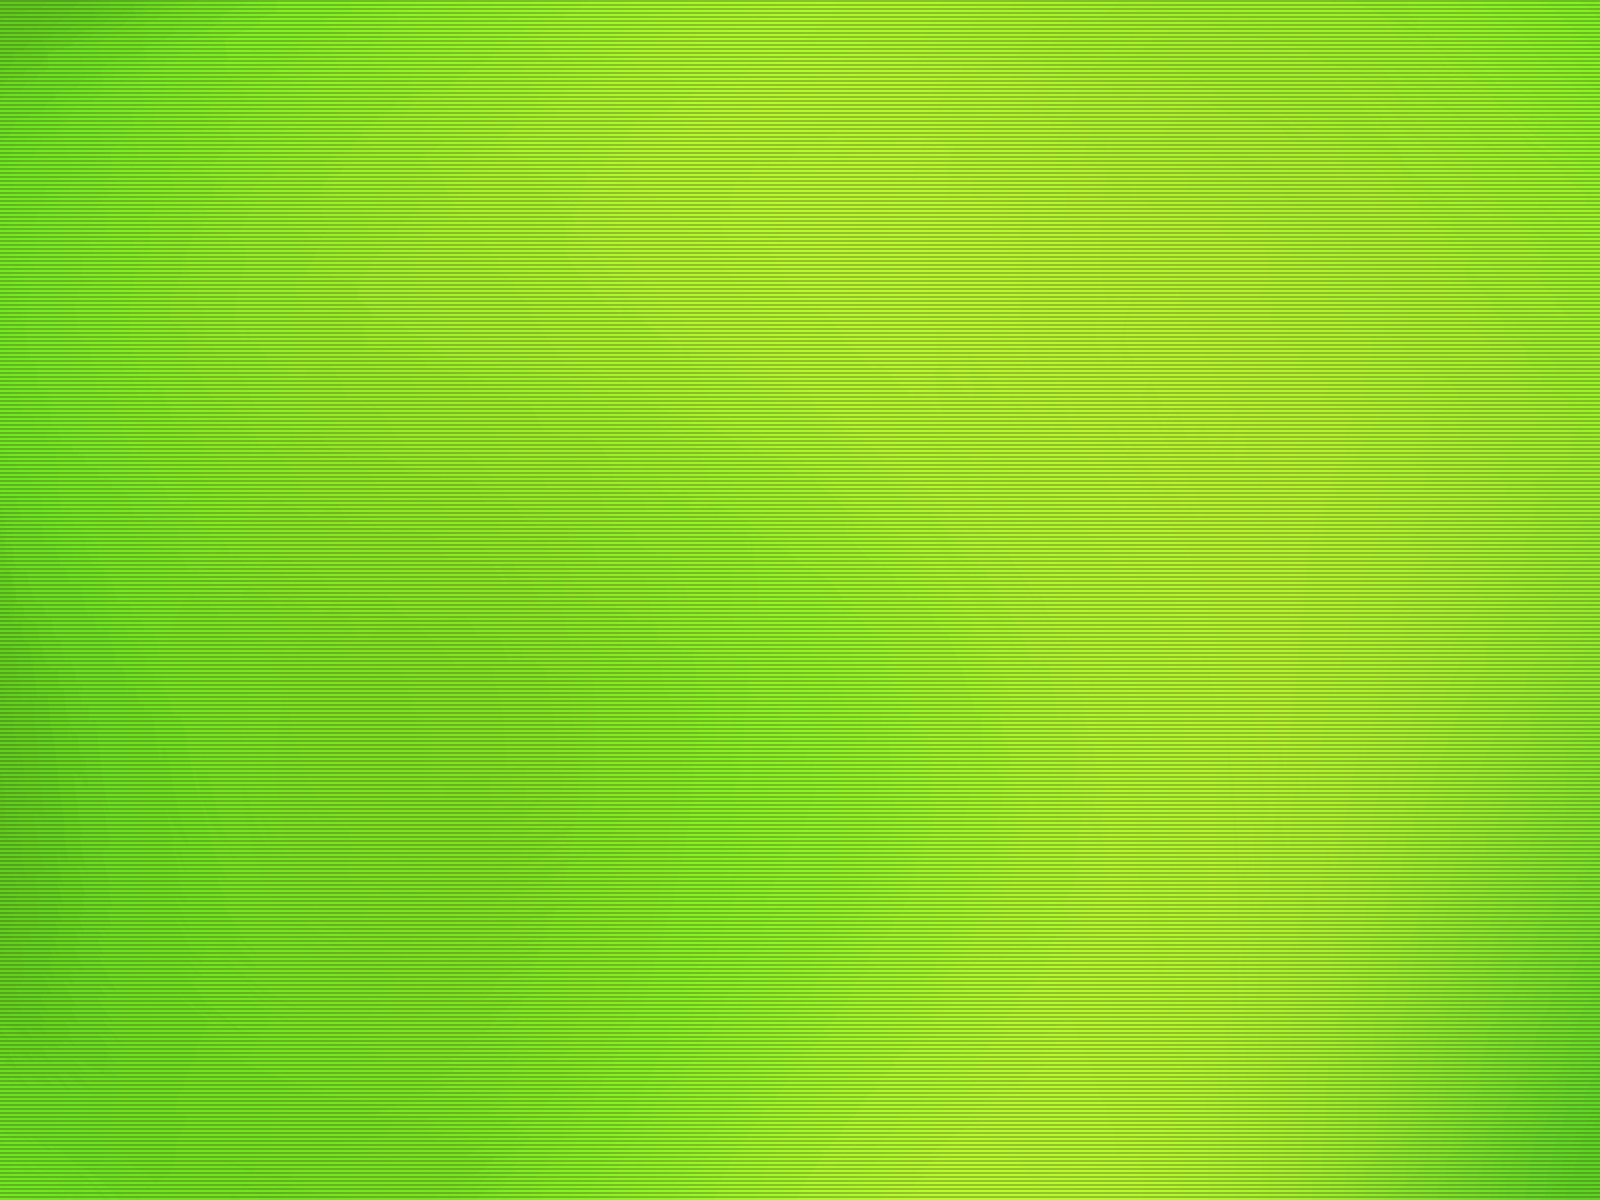 light green color backgrounds - photo #26